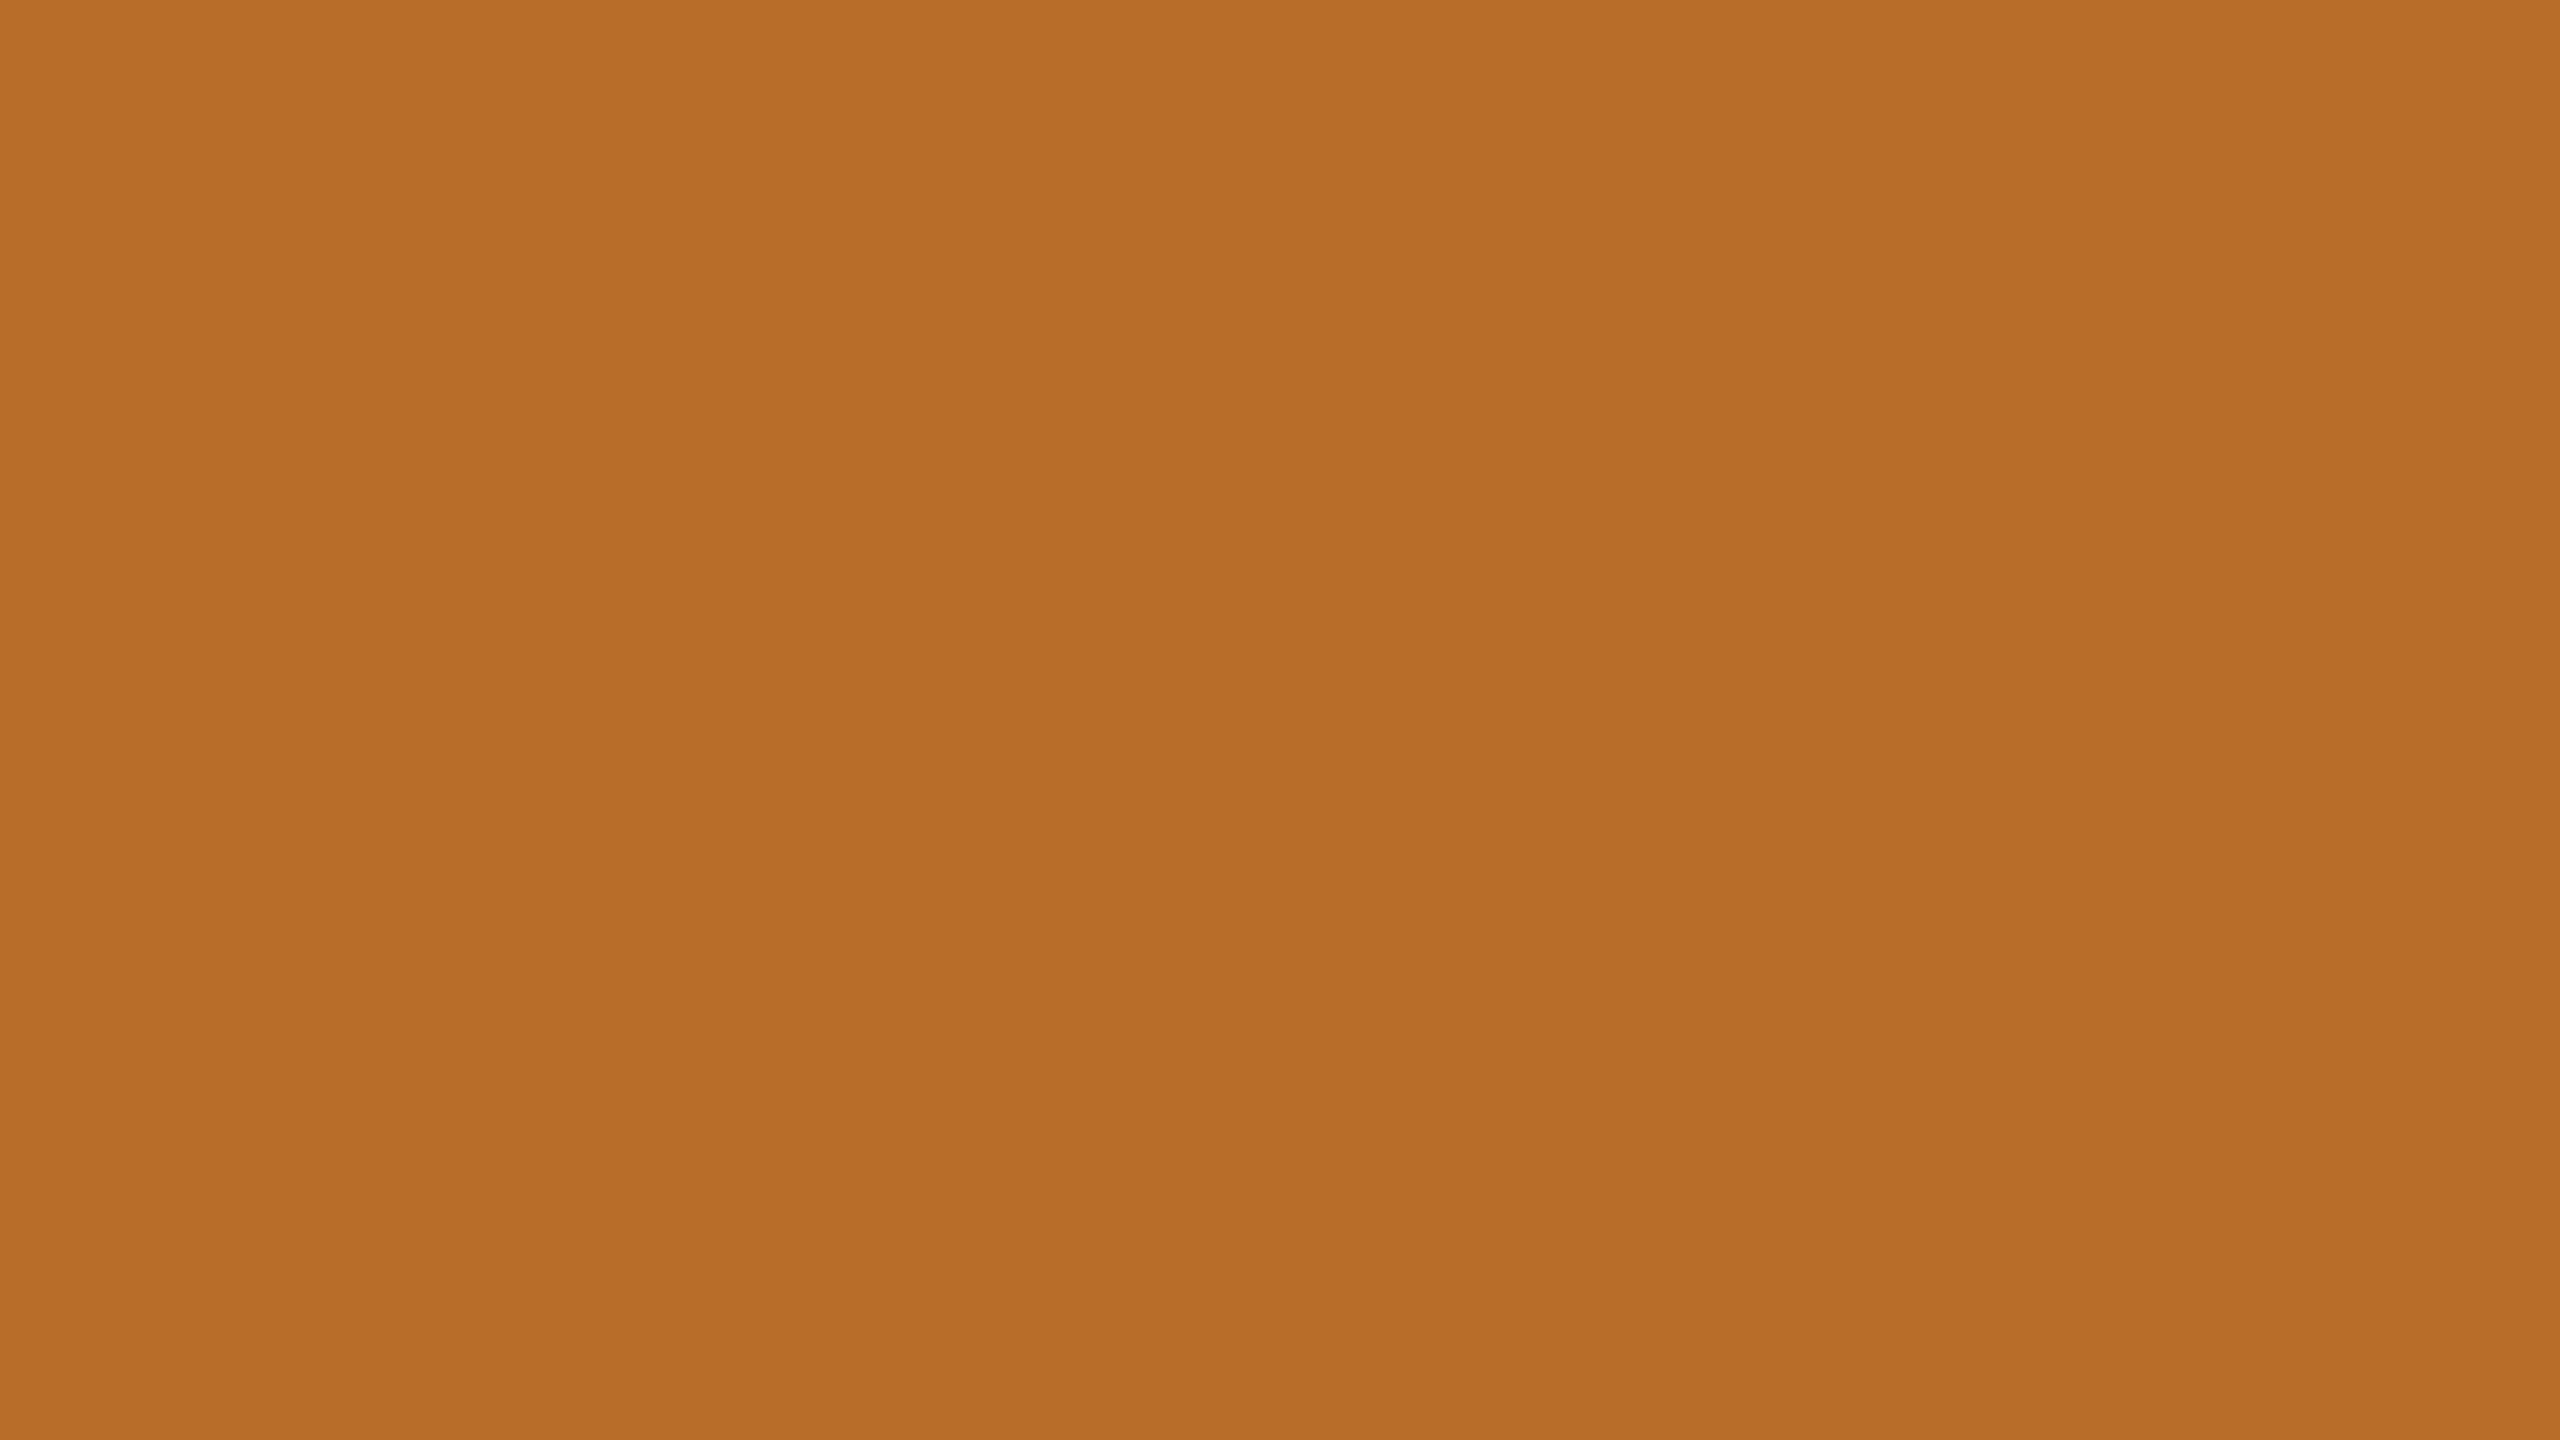 2560x1440 Liver Dogs Solid Color Background 2560x1440